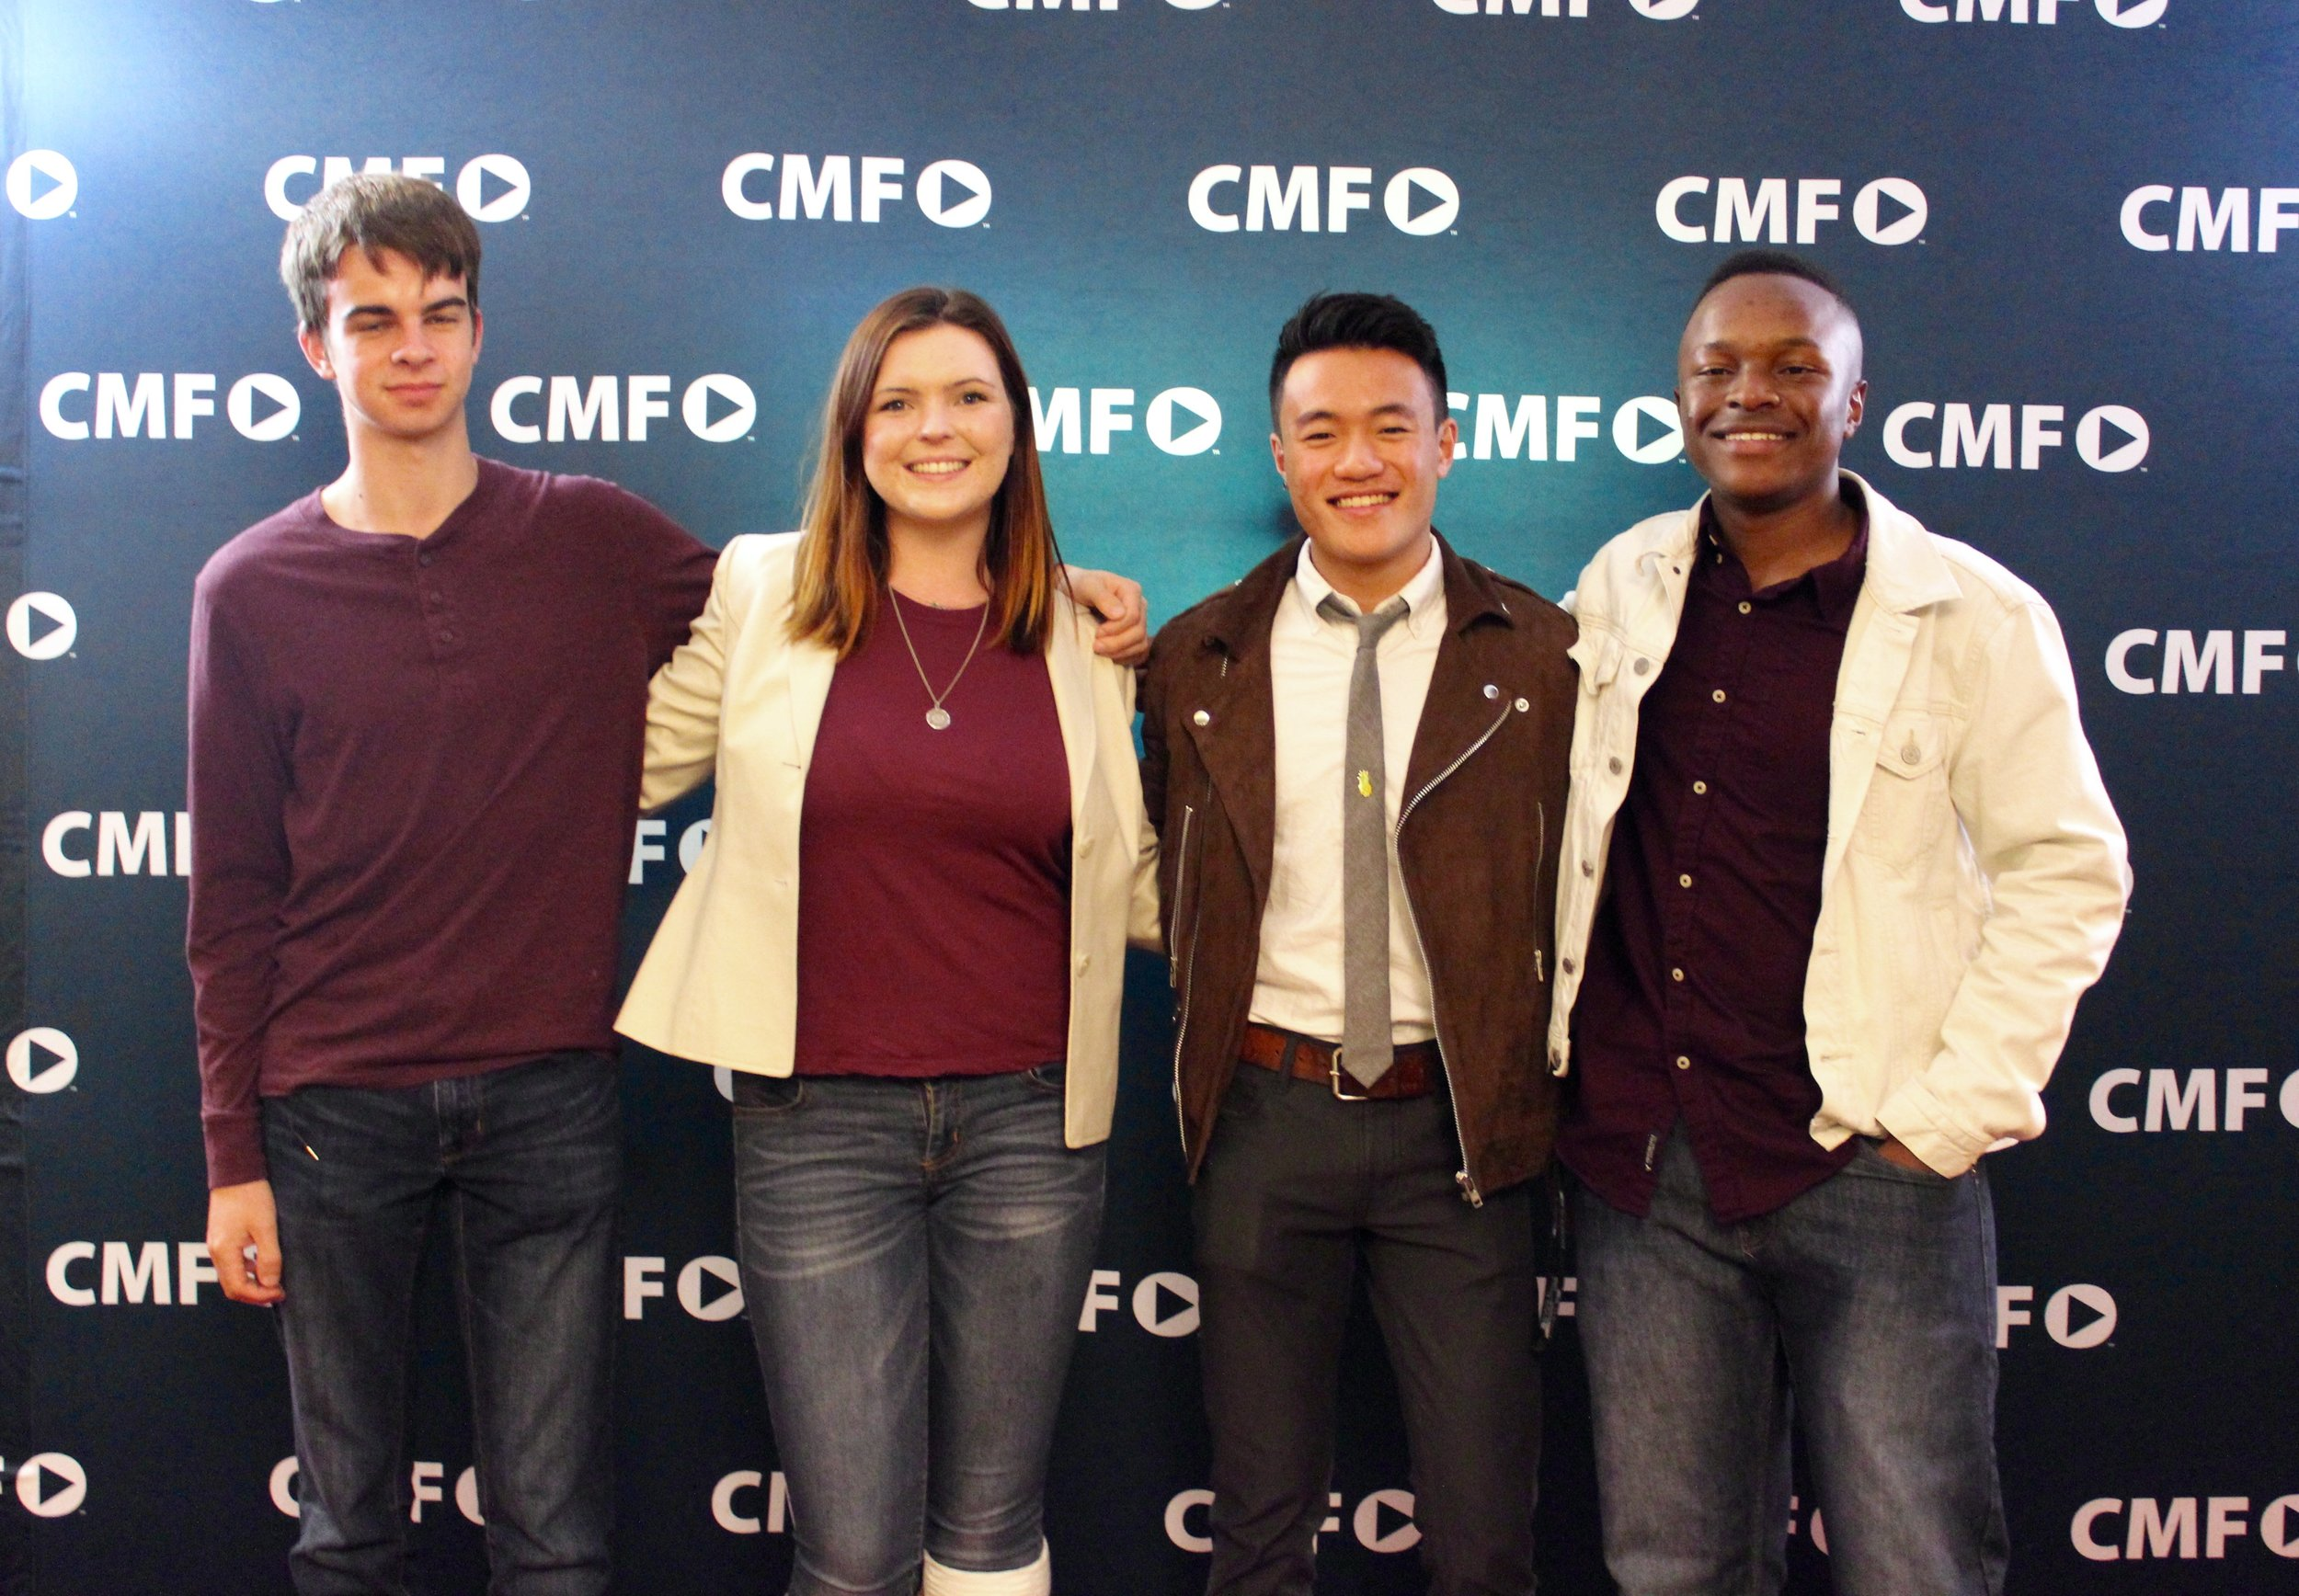 STAR // Nicky Homen  Contestants Adam Holm, Becca Garner, Jason Gorelick and James D'Haiti took the red carpet before Campus Movie Fest began Thursday night.